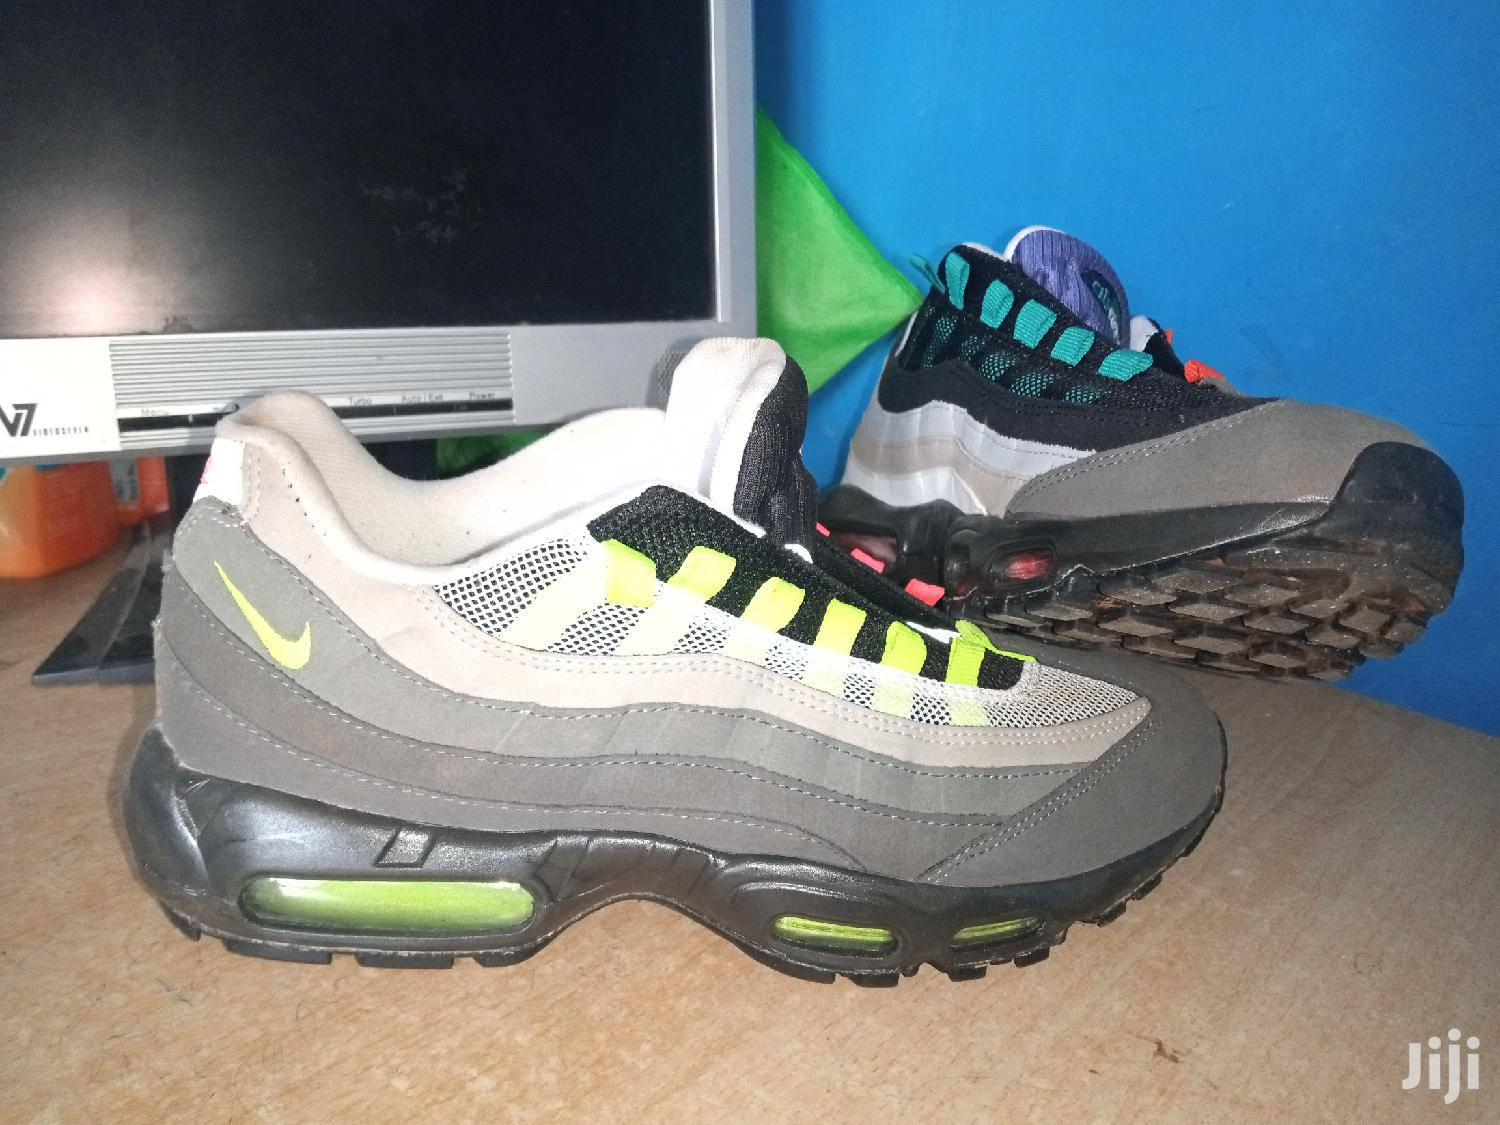 New Nike Air Max Sneakers | Shoes for sale in Mpohor/Wassa East, Western Region, Ghana